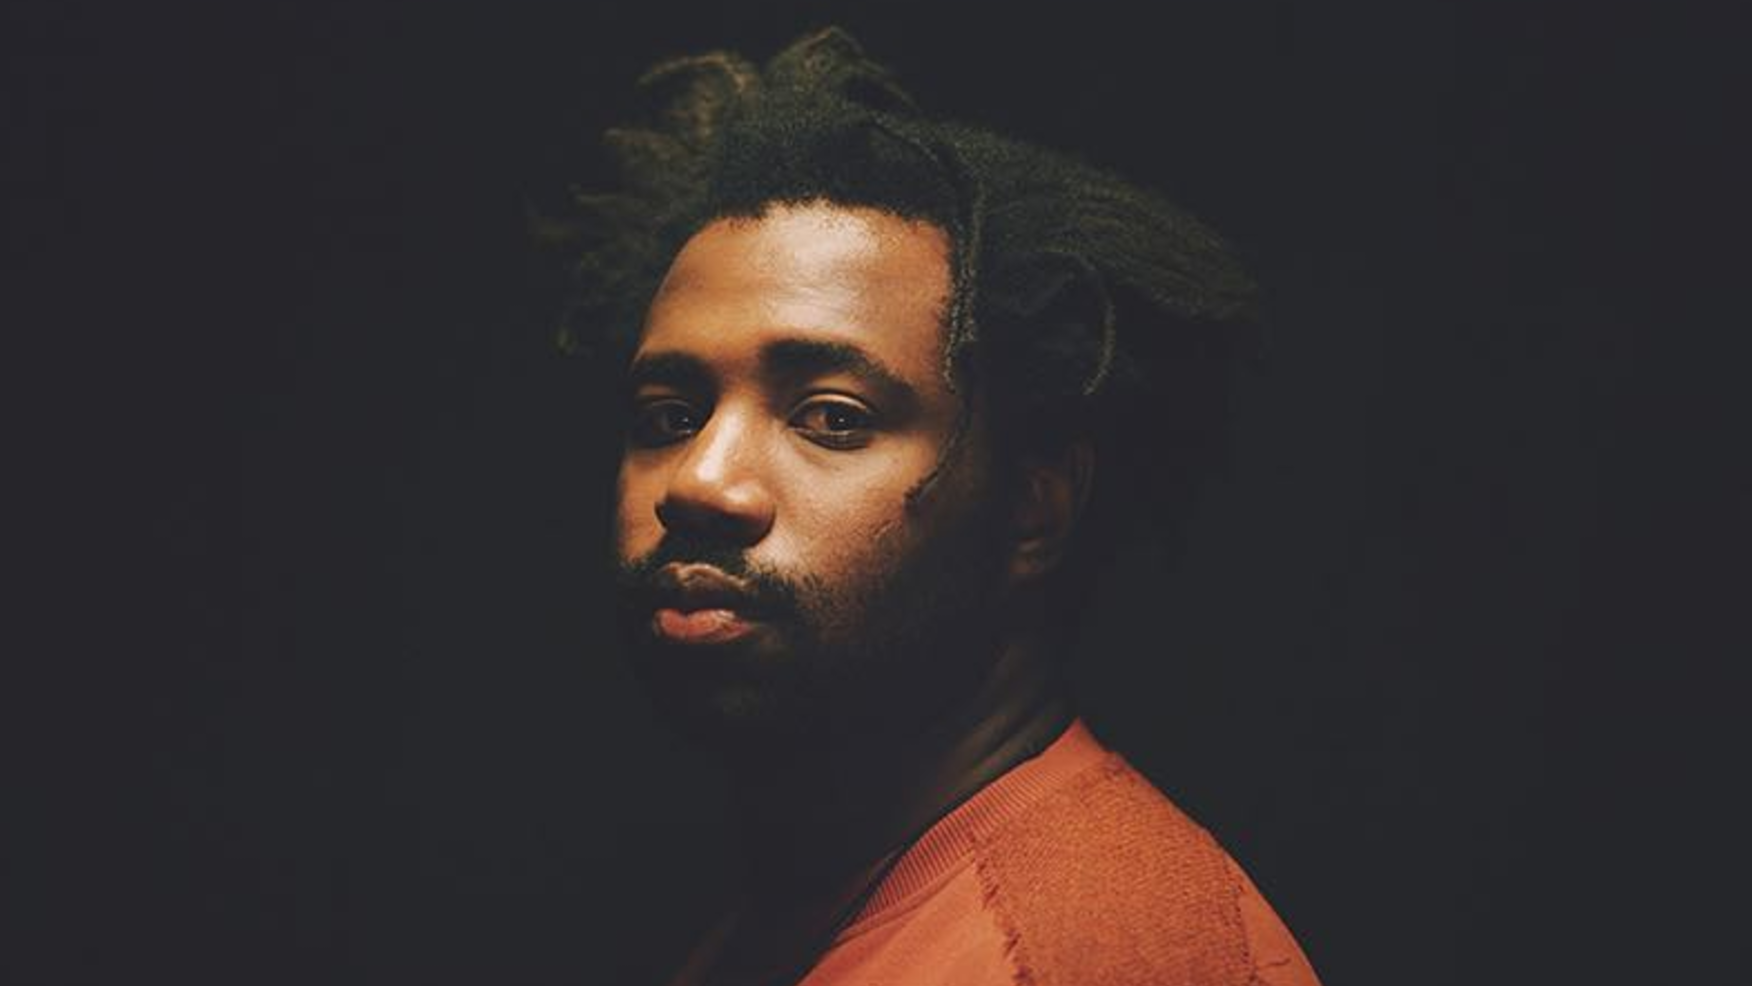 Sampha and Syd Connect on